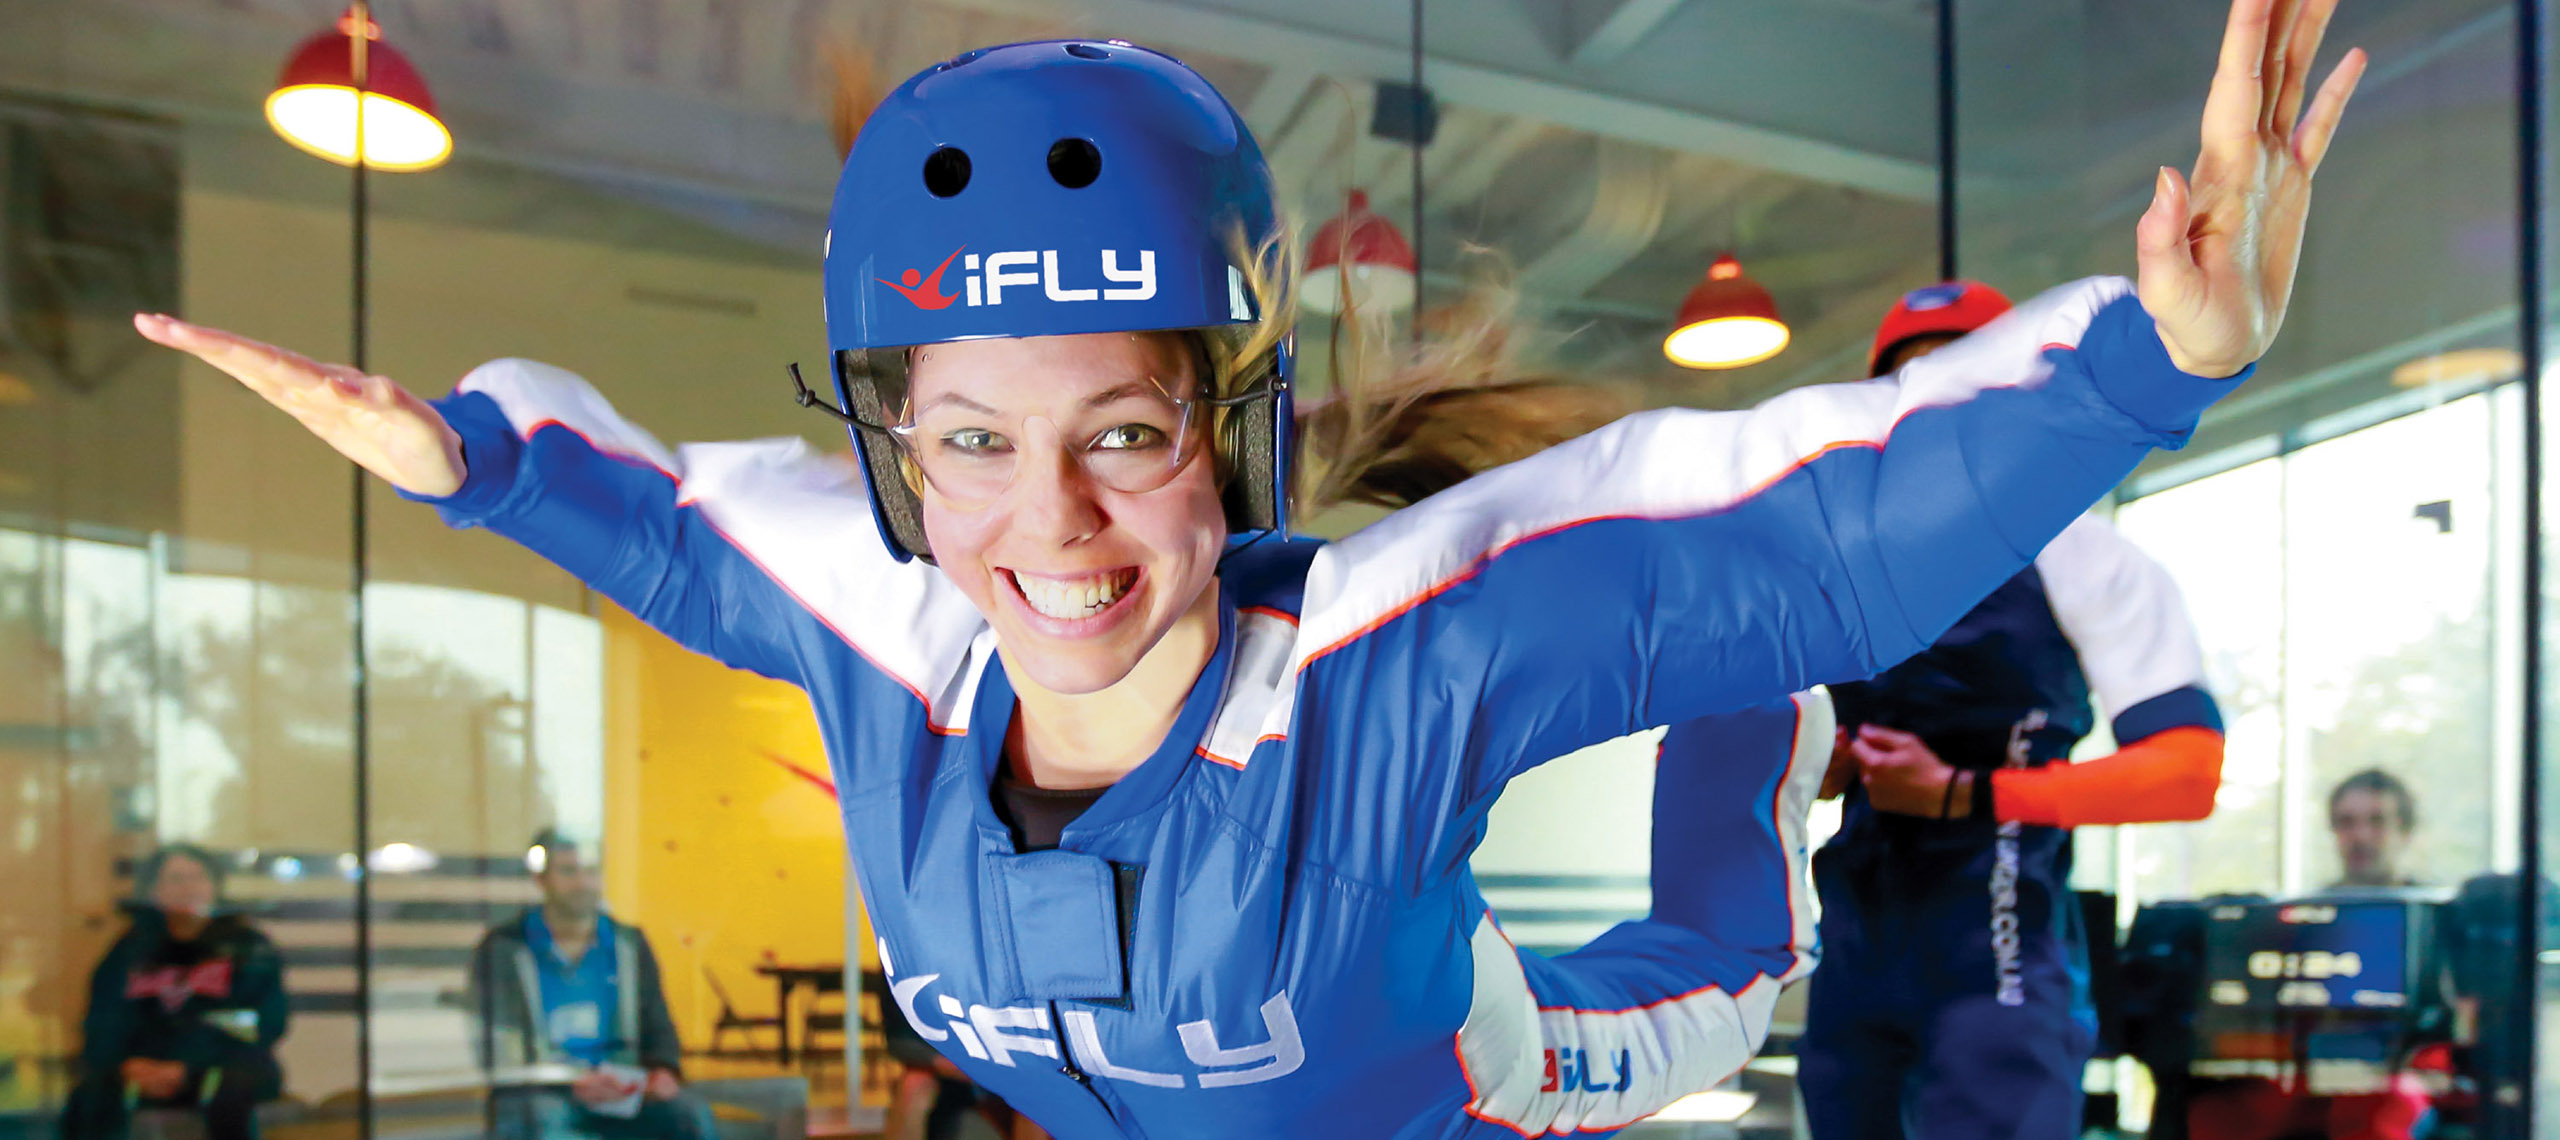 OTHER RECREATION - iFLY